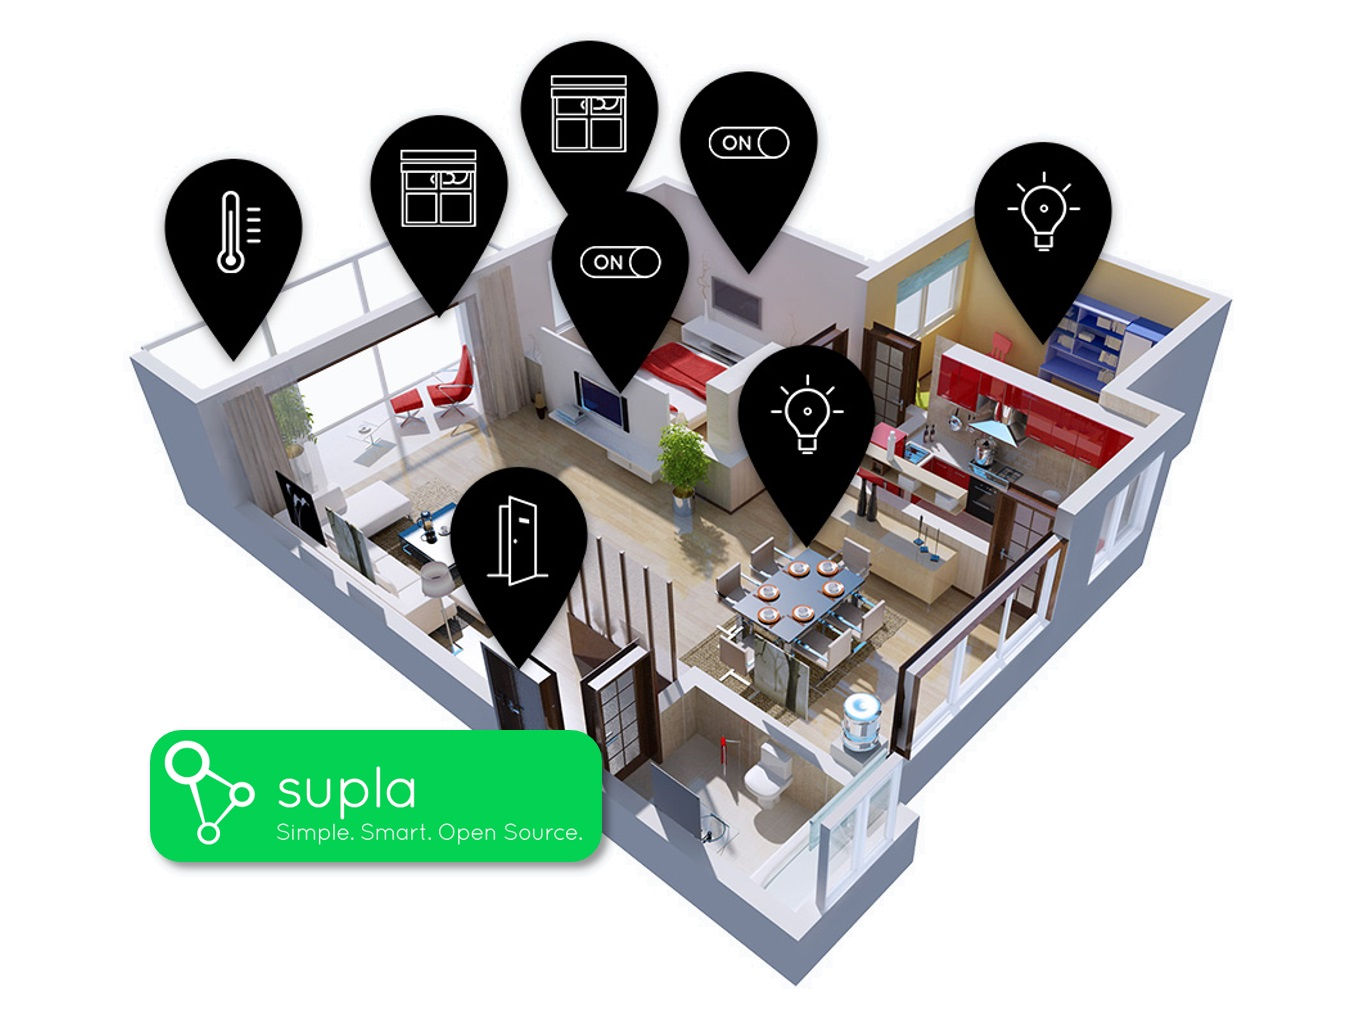 Home Automation by supla.org - powered by CONTROLLINO